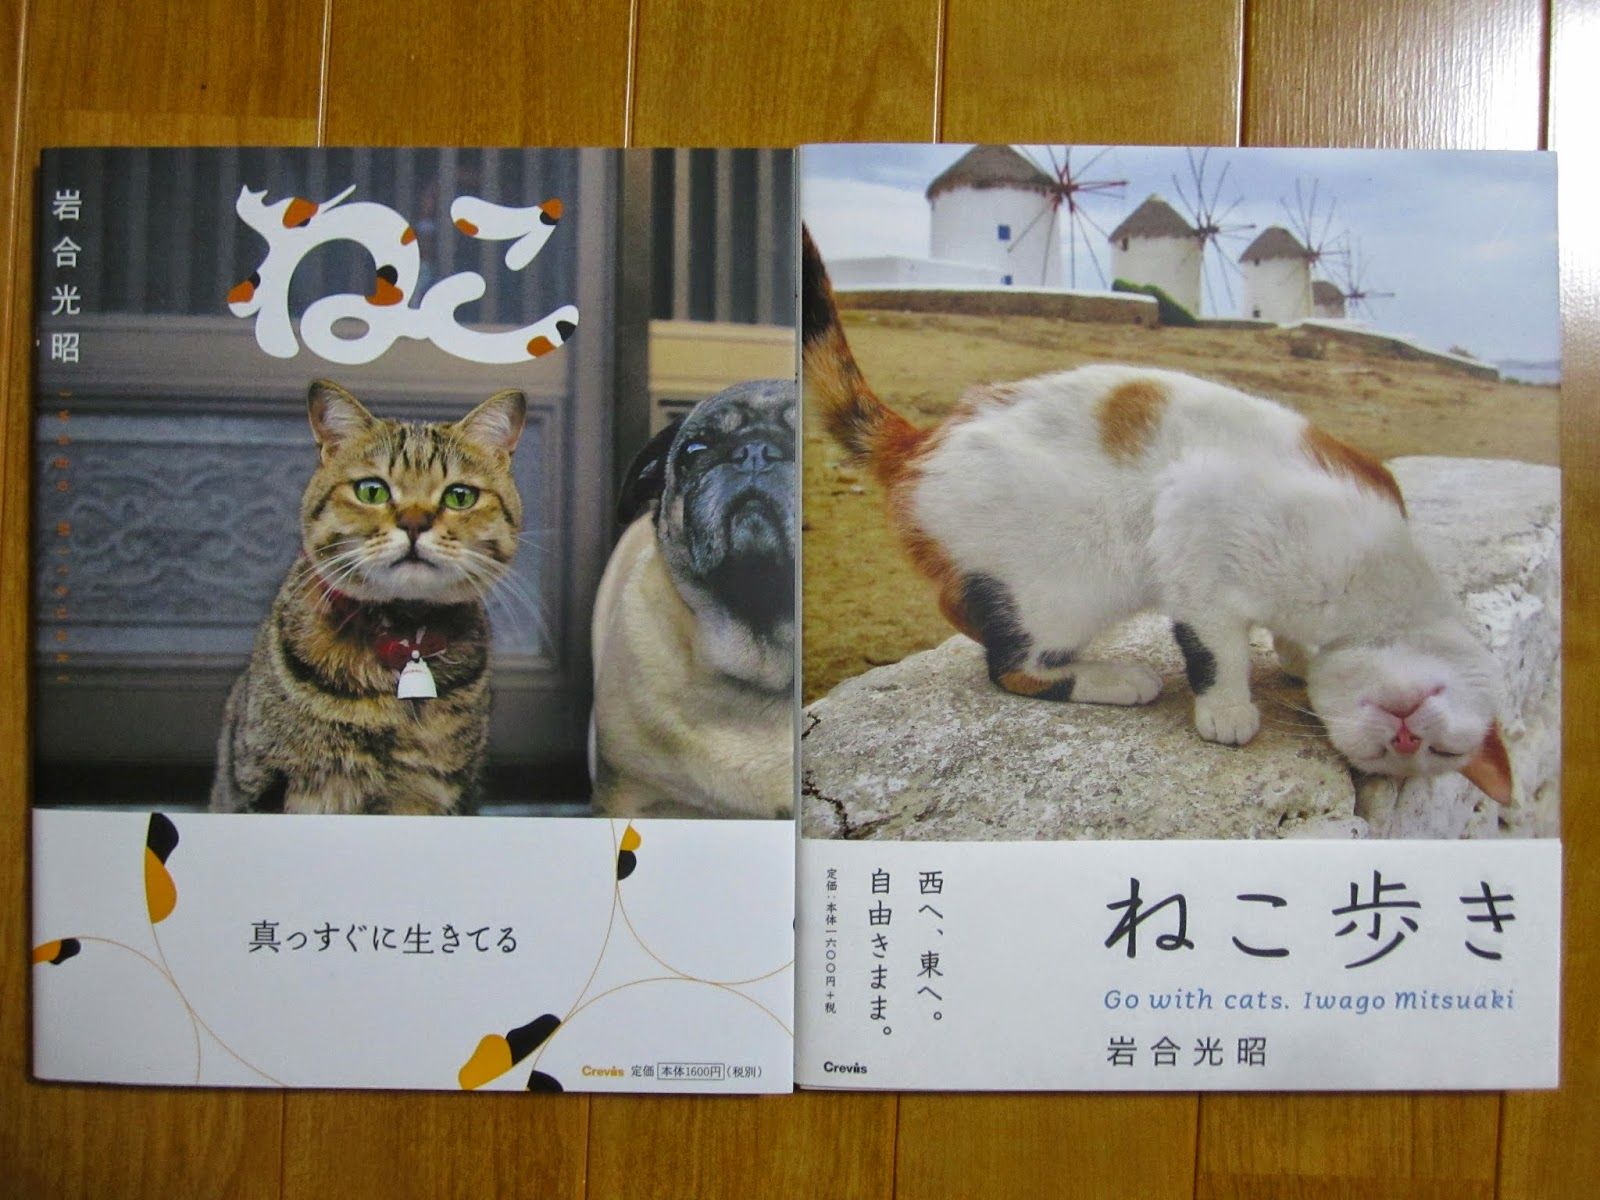 Photo Books Neko and Neko Aruki (Go with cats) by Iwago Mitsuaki 岩合光昭写真集 ねこ ねこ歩き